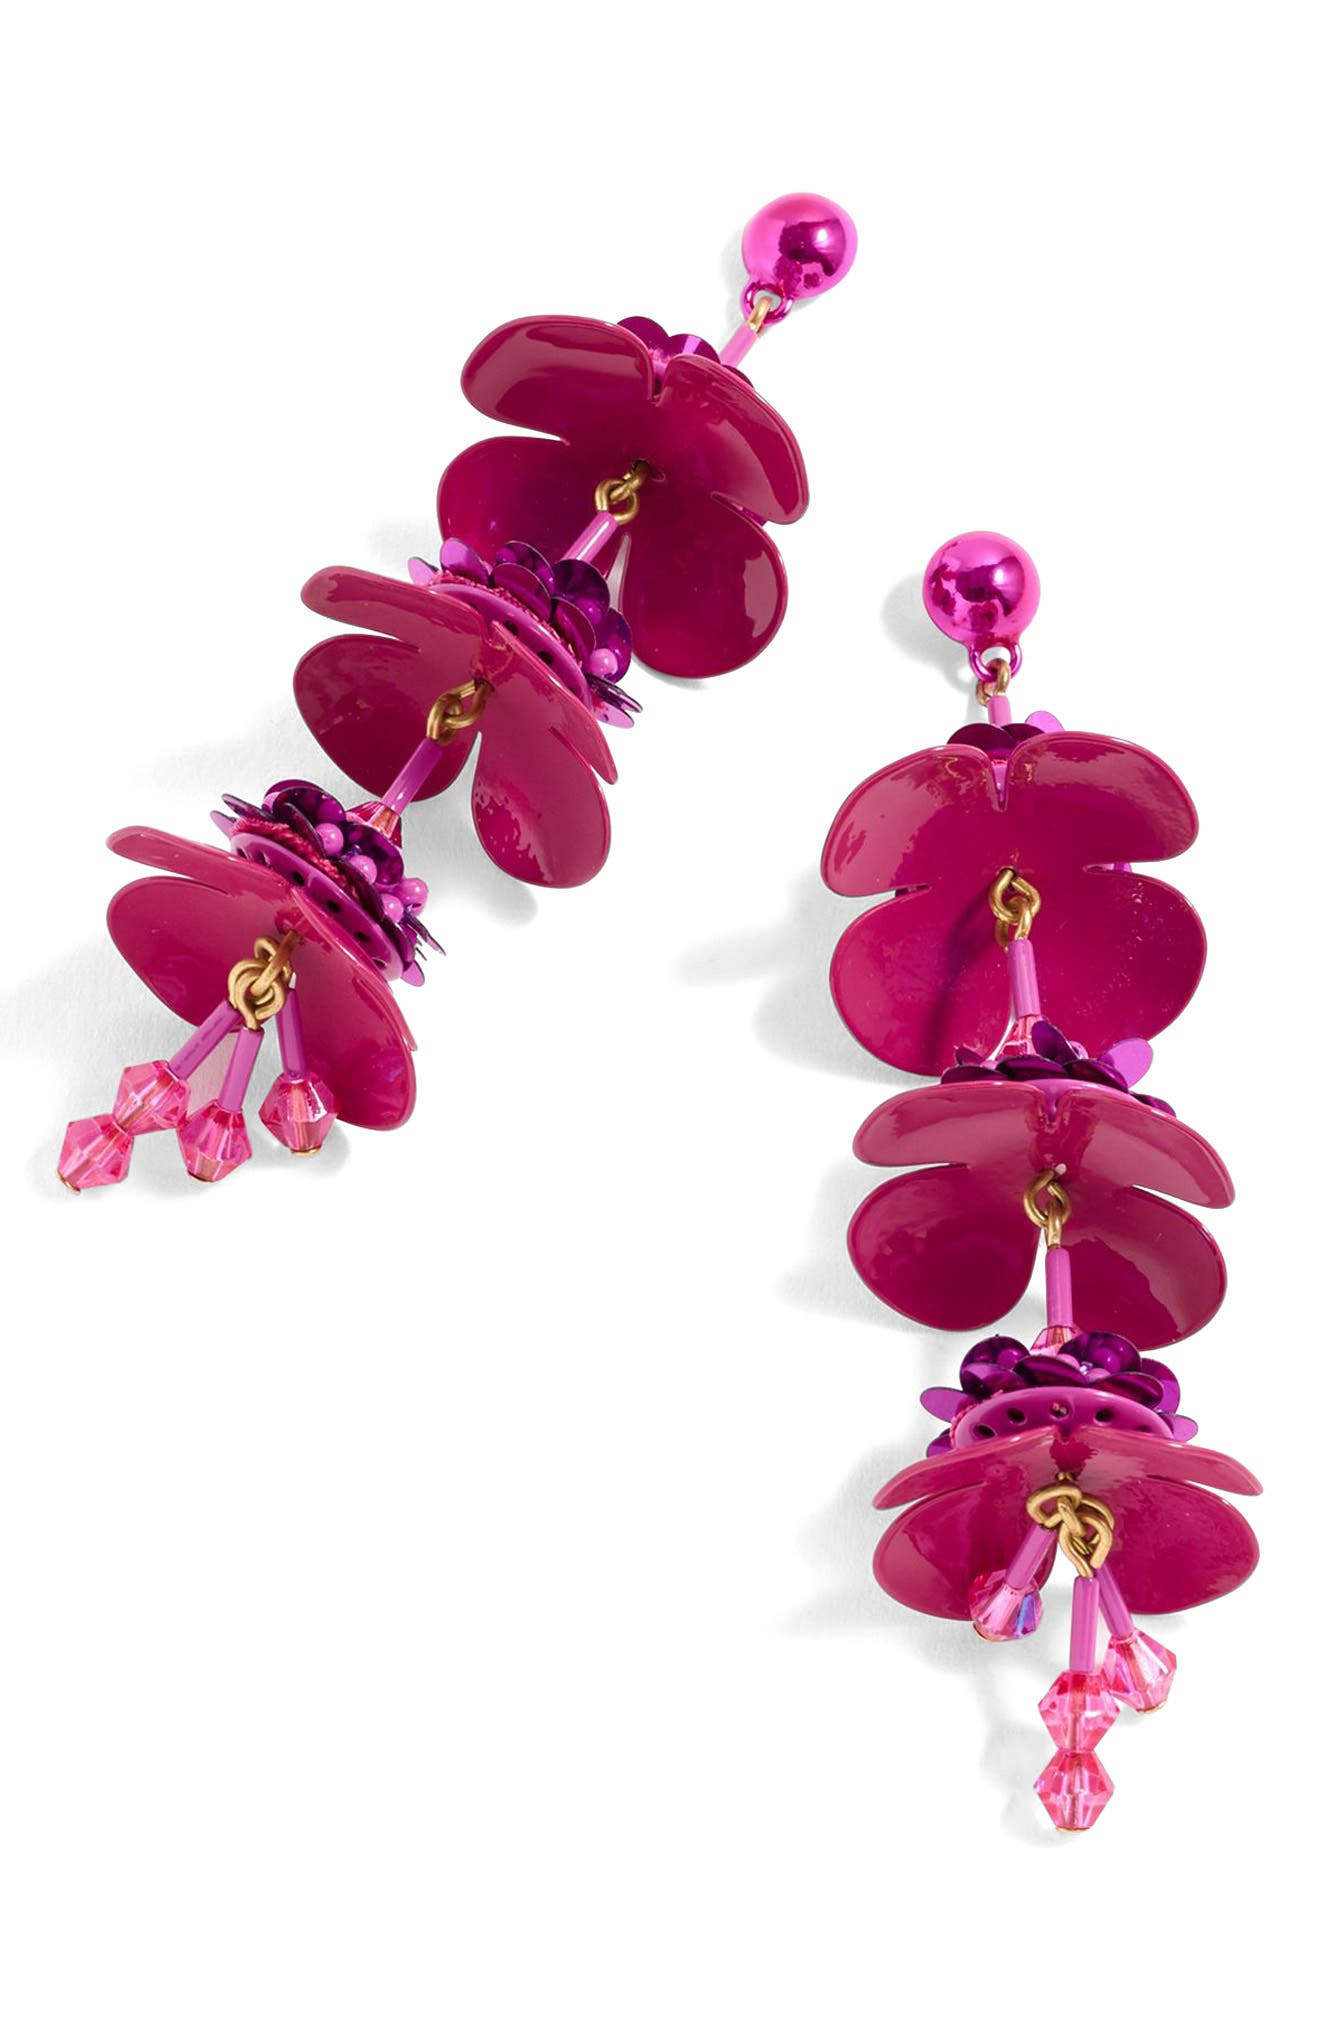 Bead & Blossom Earrings,                         Main,                         color, Pink